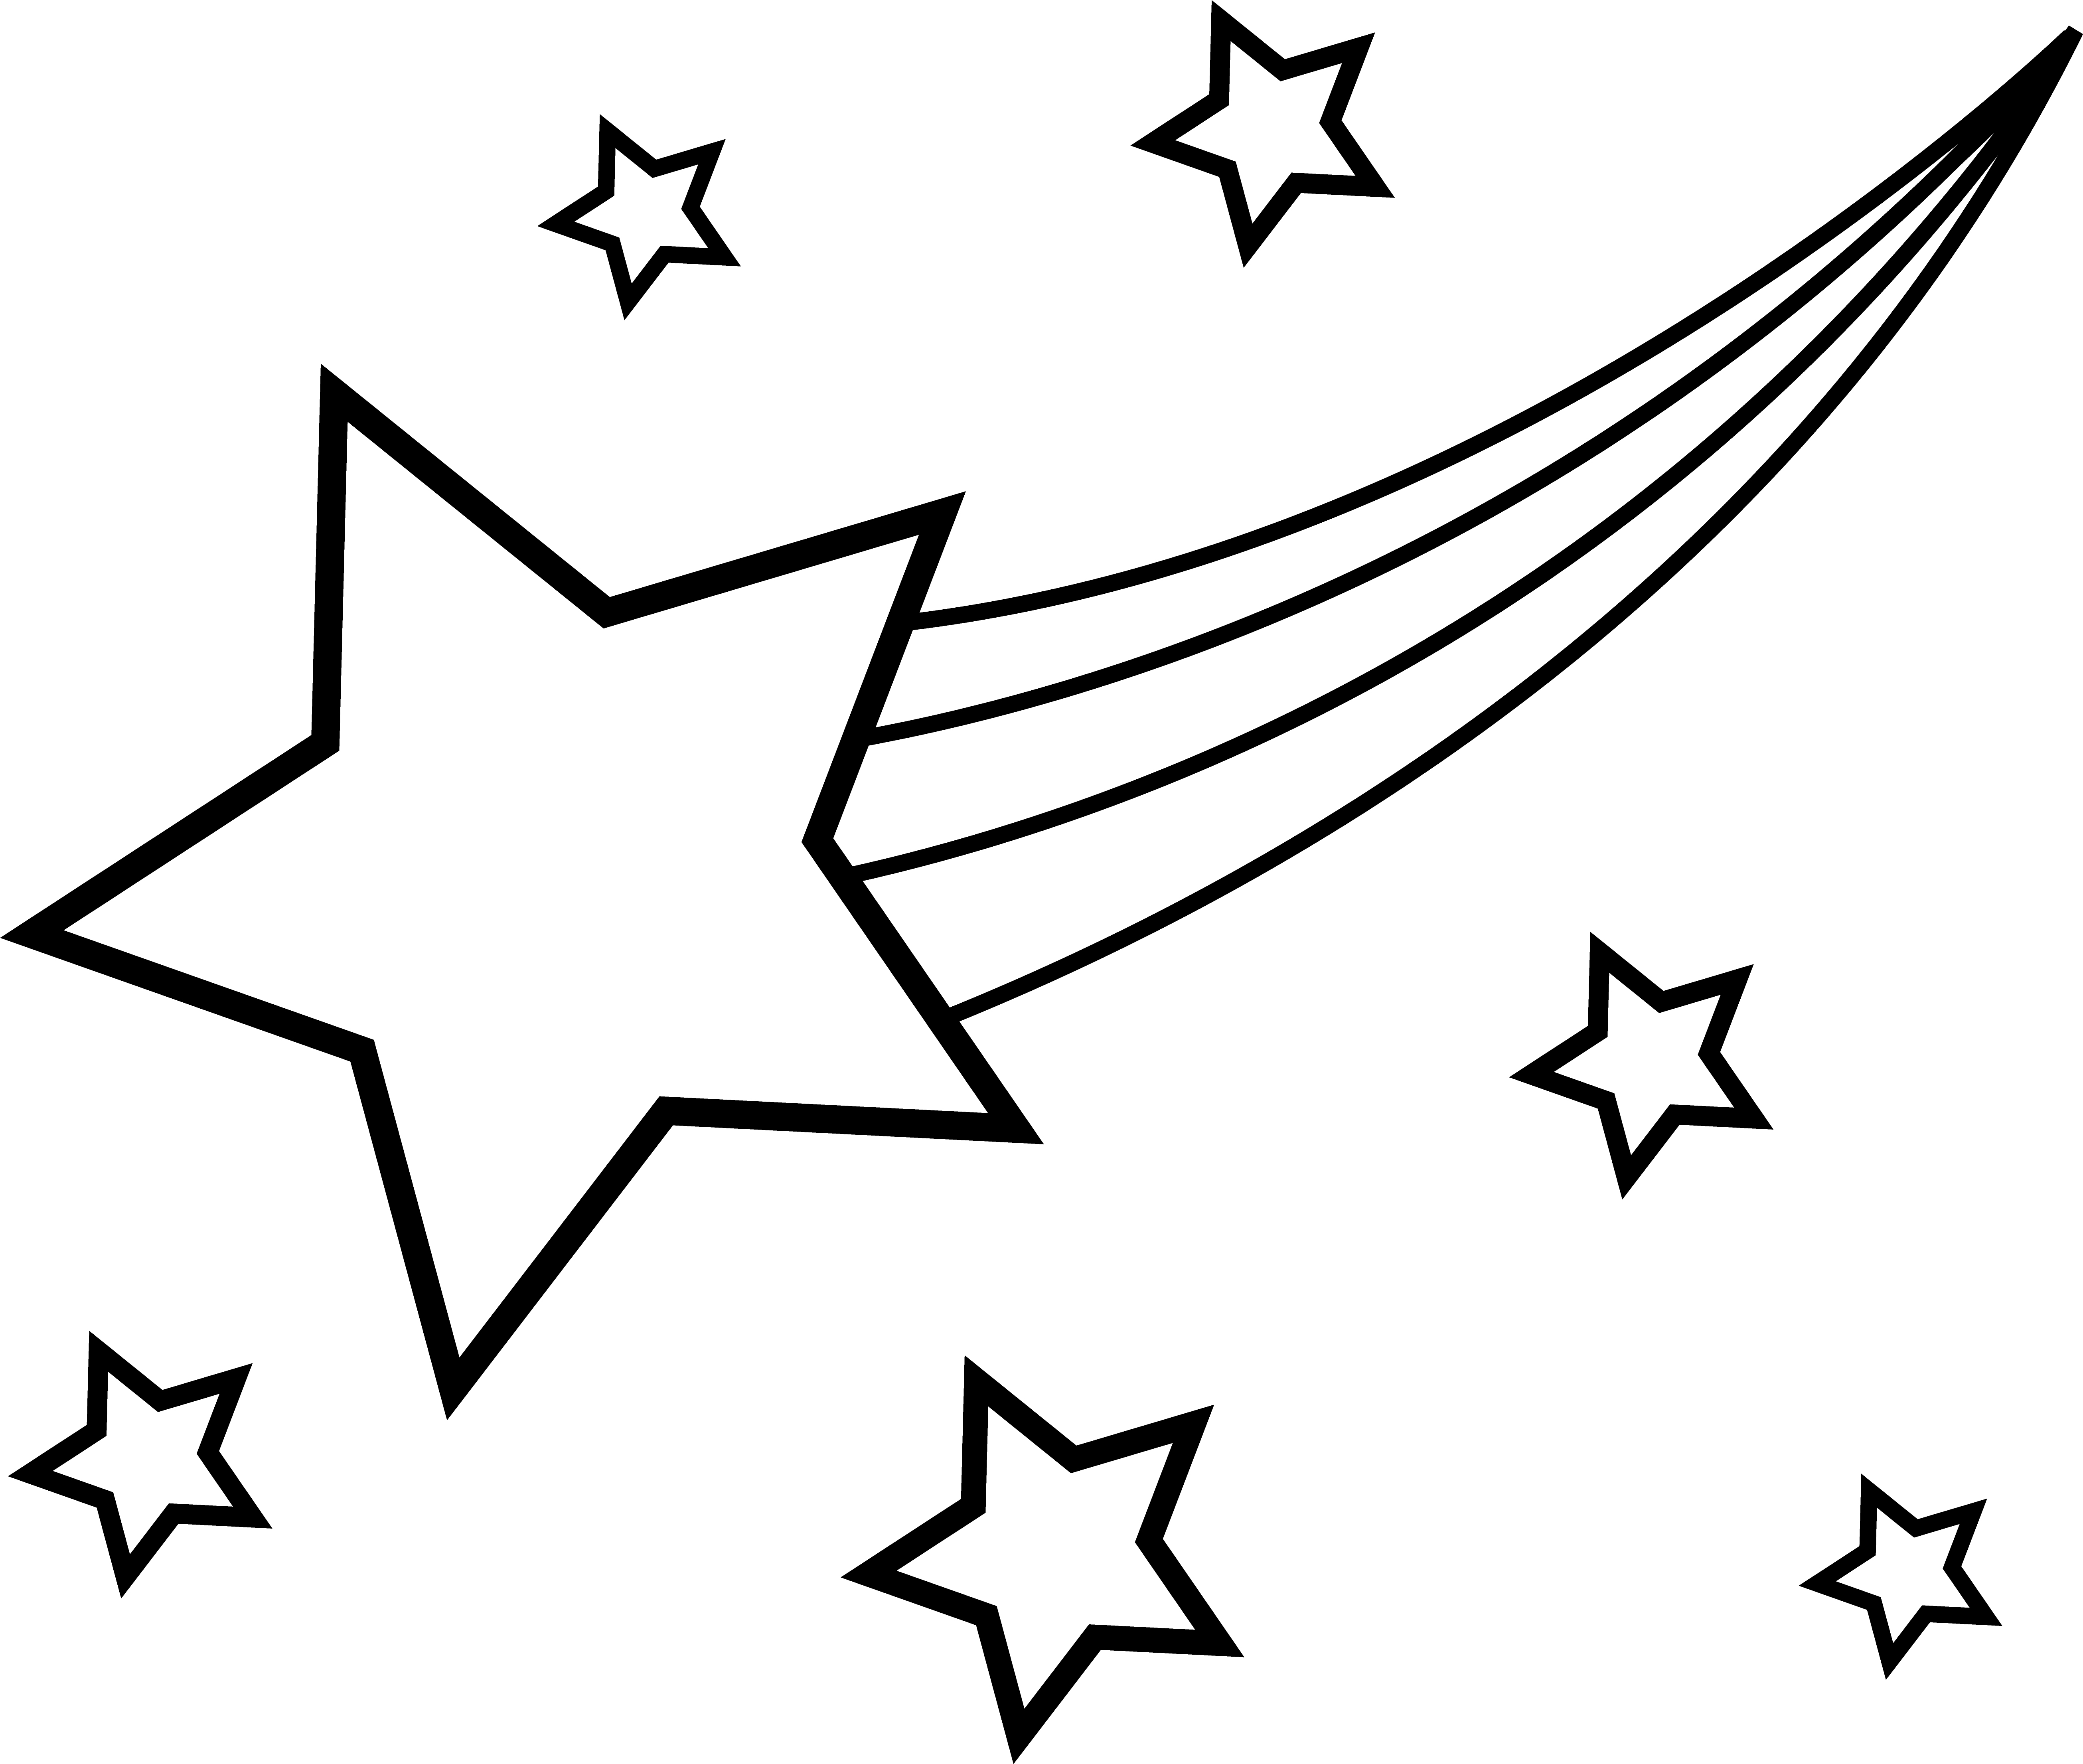 coloring pages of stars stars coloring pages best coloring pages for kids coloring stars pages of